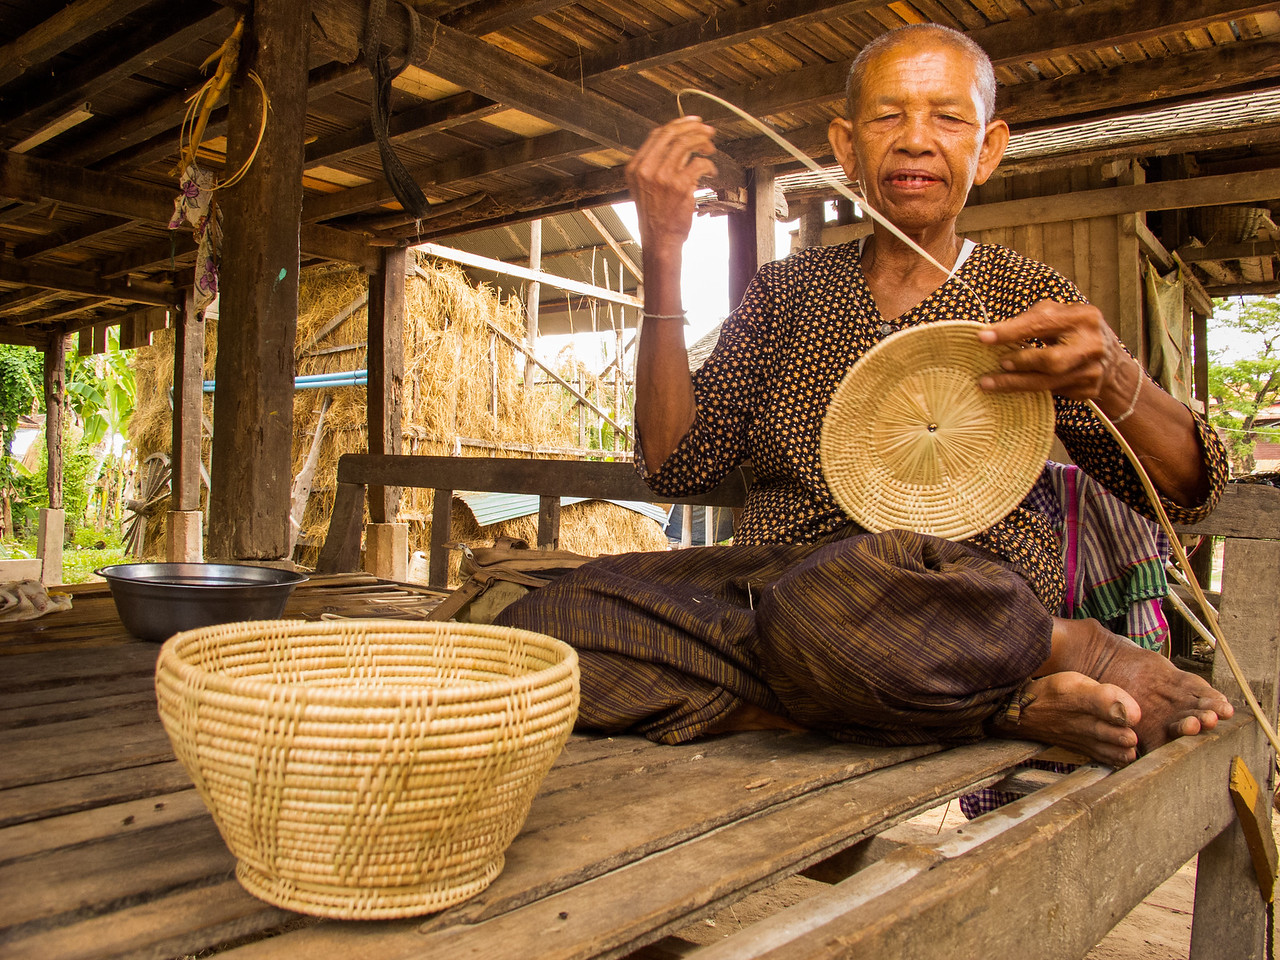 Basket Weaver in Cambodia